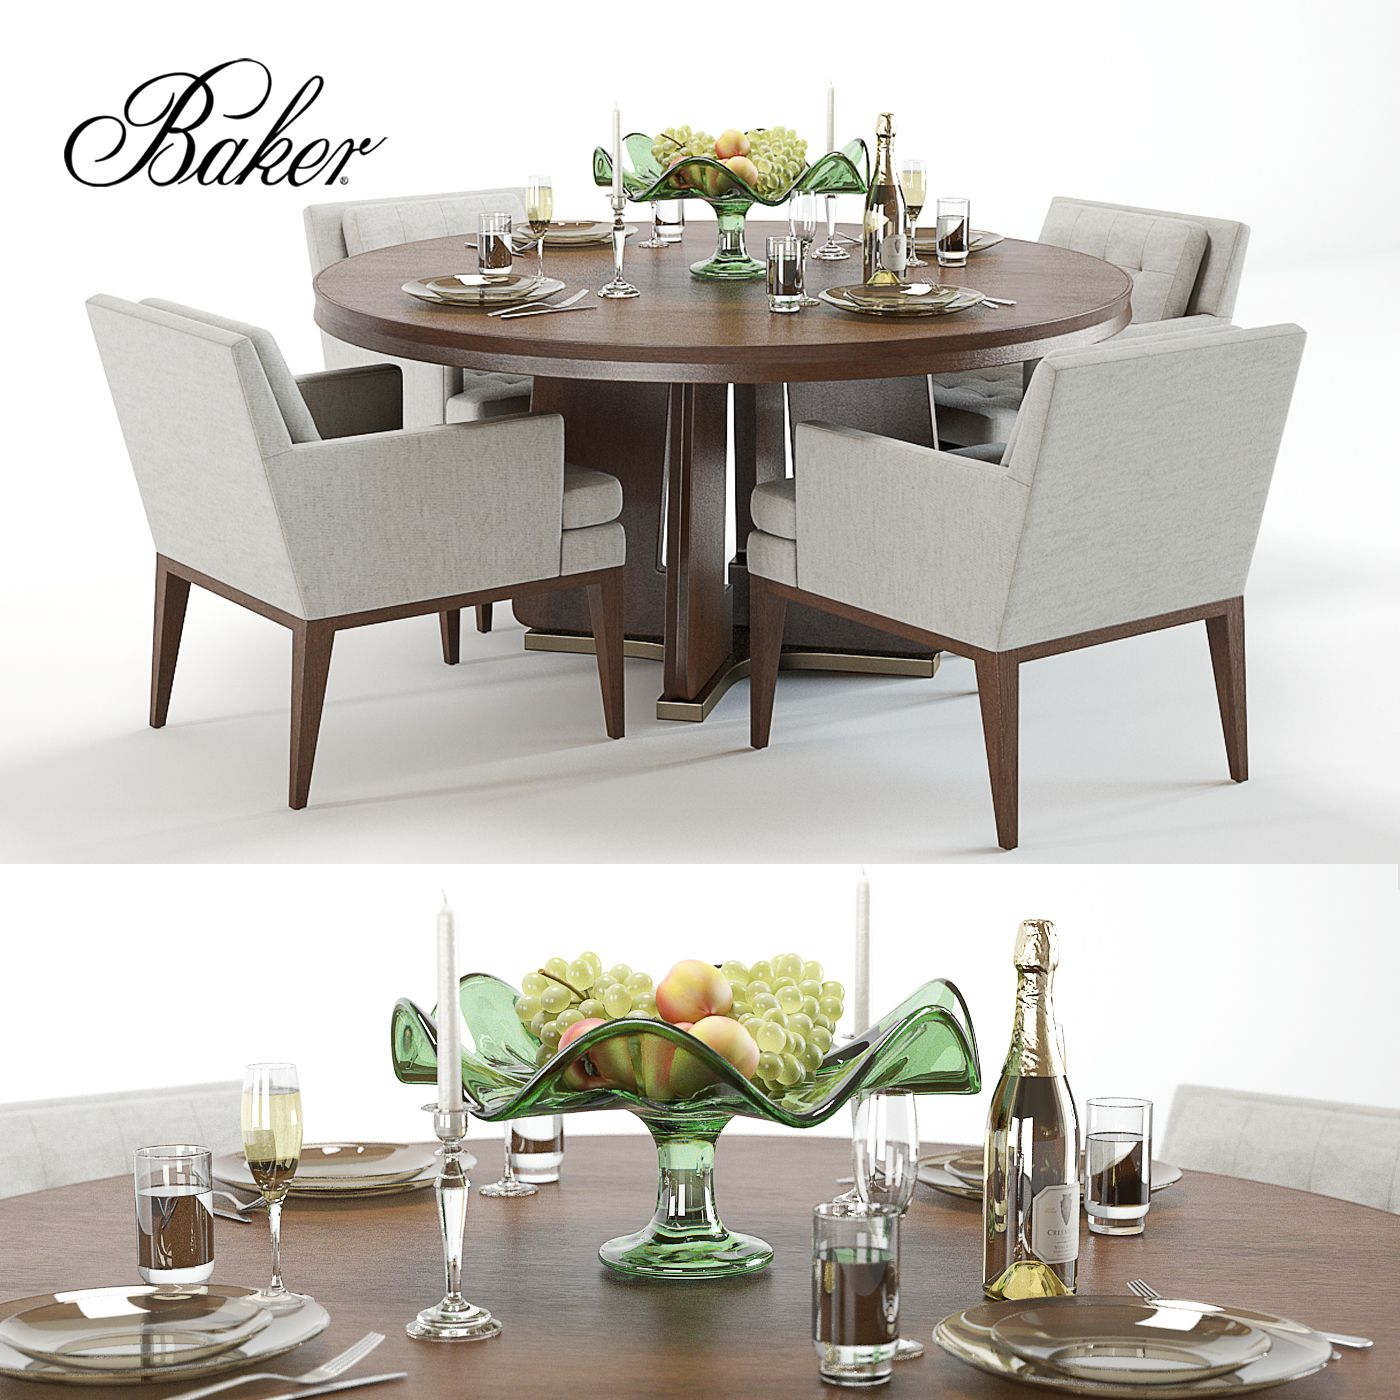 Baker ceremony circle table ojai chairs circle table side 3d model baker ceremony circle dining table ojai side chair and decor sxxofo